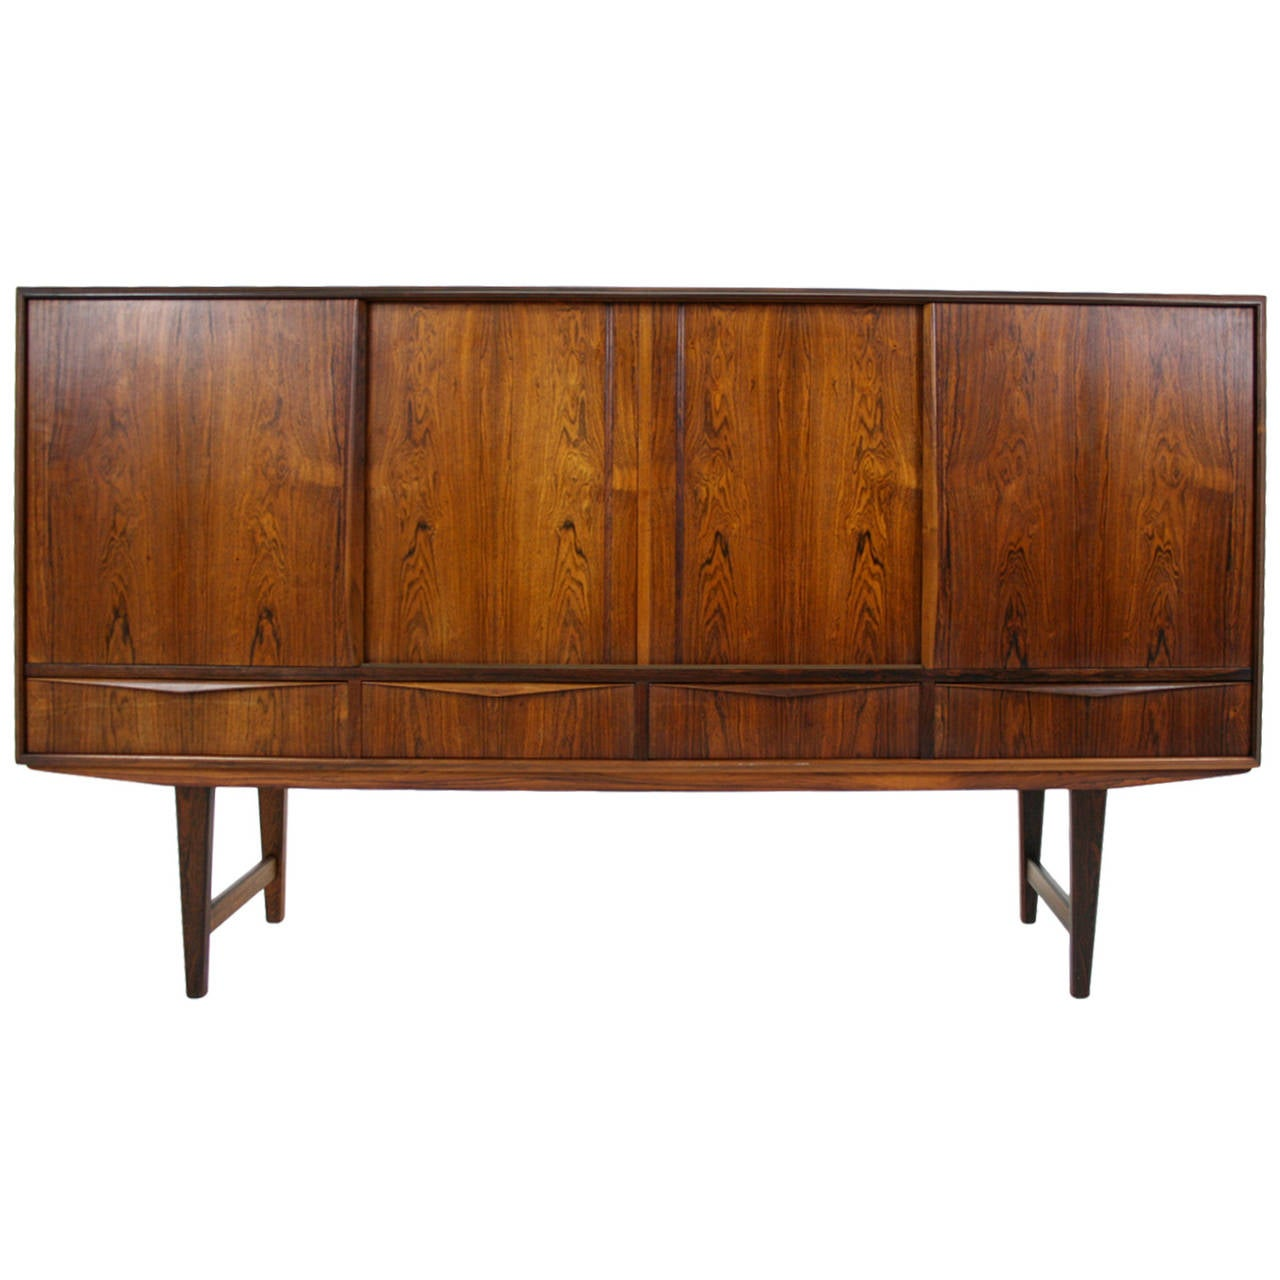 mid century modern rosewood sideboard or credenza for sale. Black Bedroom Furniture Sets. Home Design Ideas